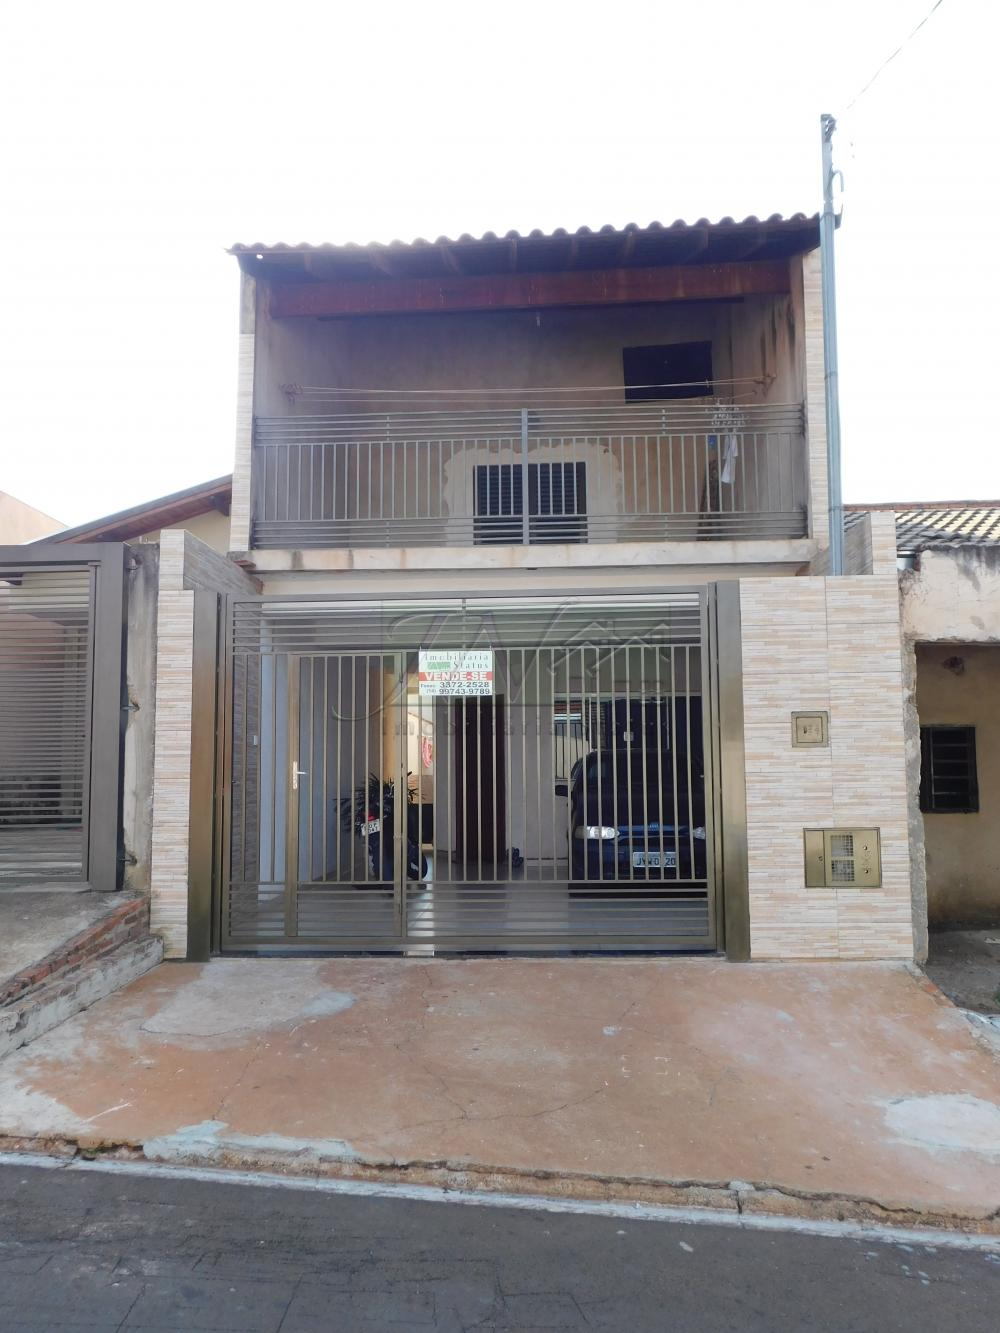 Santa Cruz do Rio Pardo residenciais Venda R$325.000,00 4 Dormitorios 2 Suites Area do terreno 157.00m2 Area construida 210.00m2